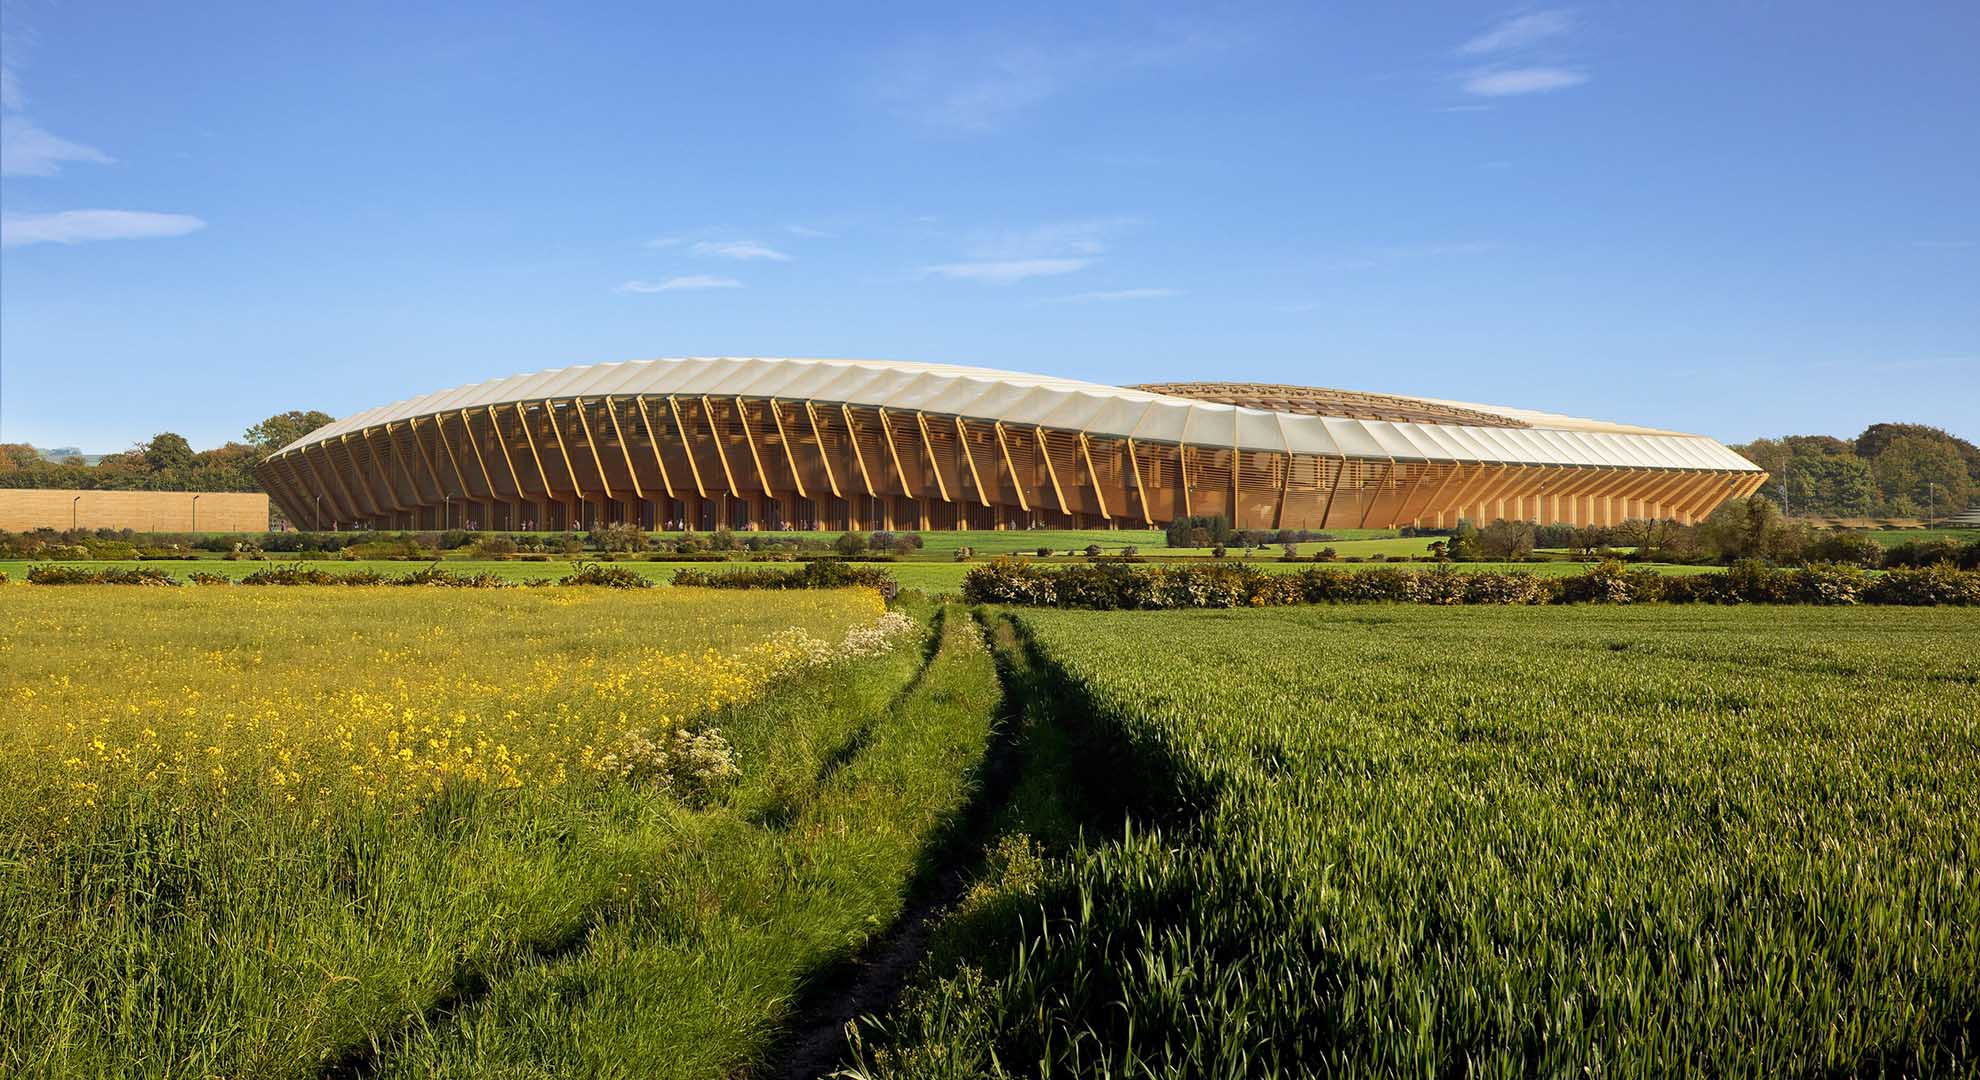 The Forest Green Rovers, the soccer club with the most sustainable architecture in the world